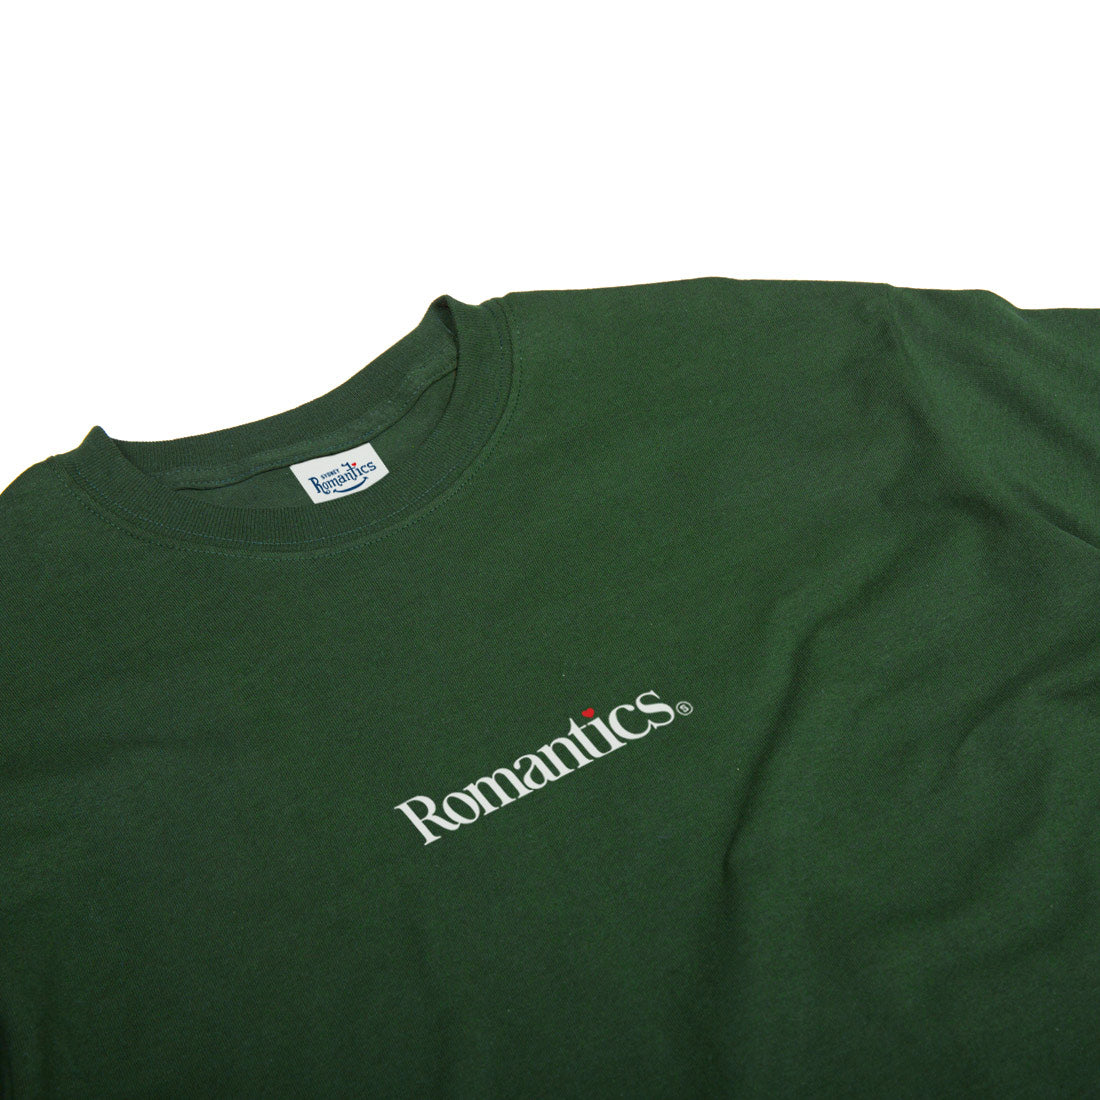 Marrickville T-Shirt